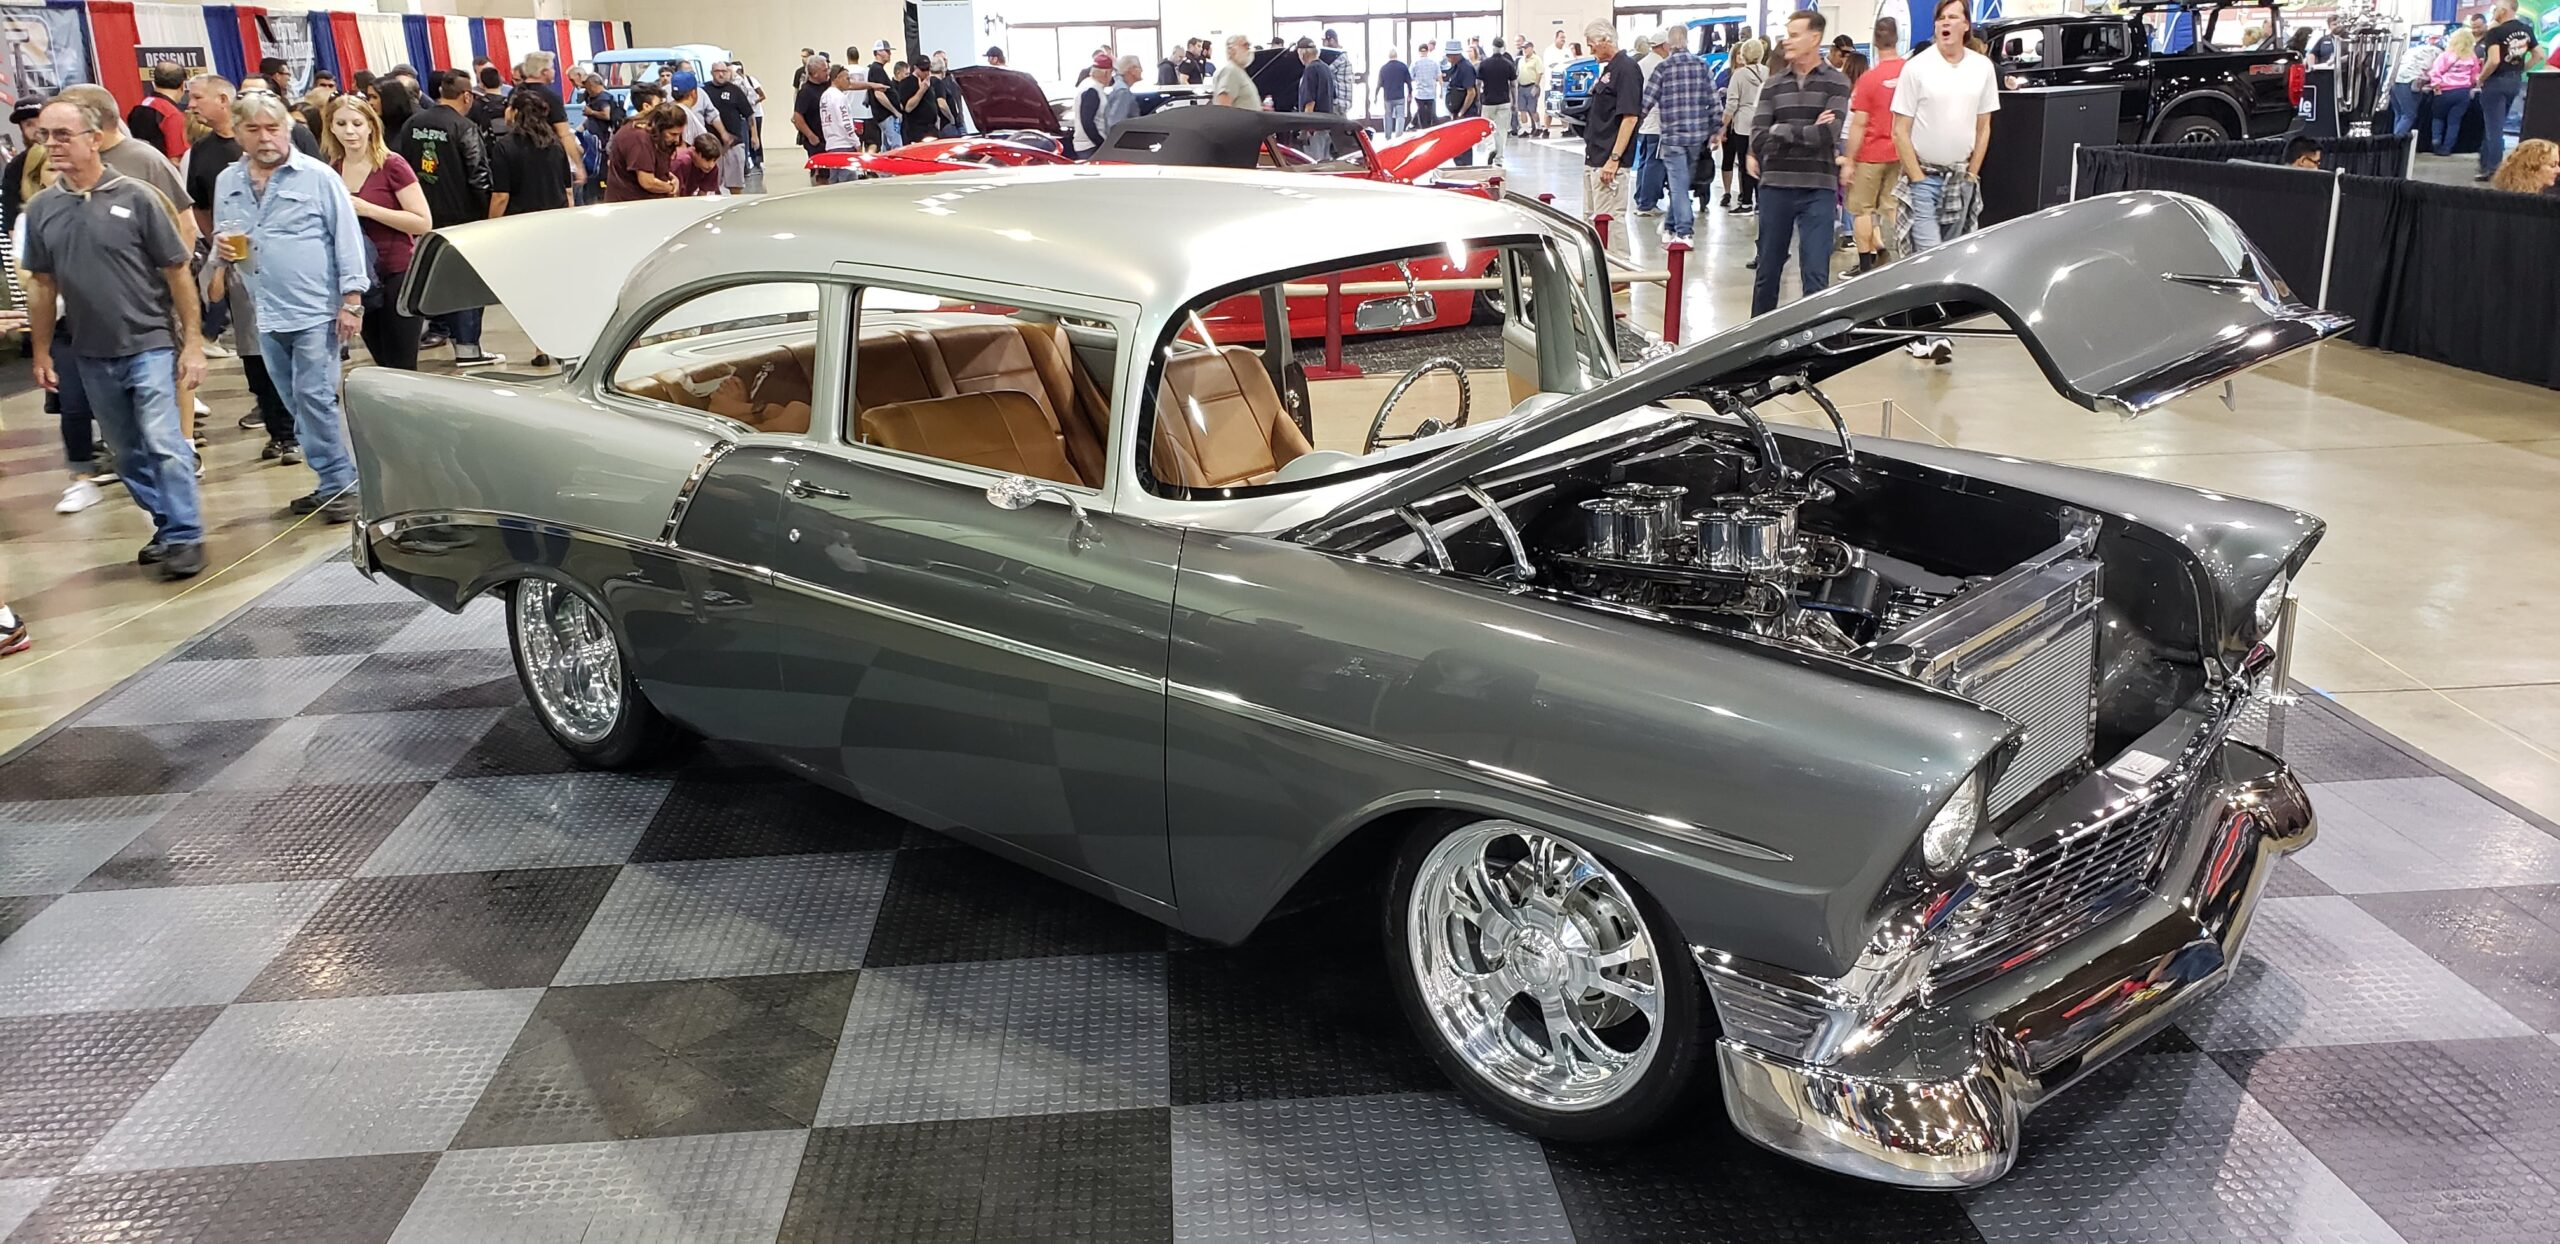 [Gallery] A Look Back at the GNRS